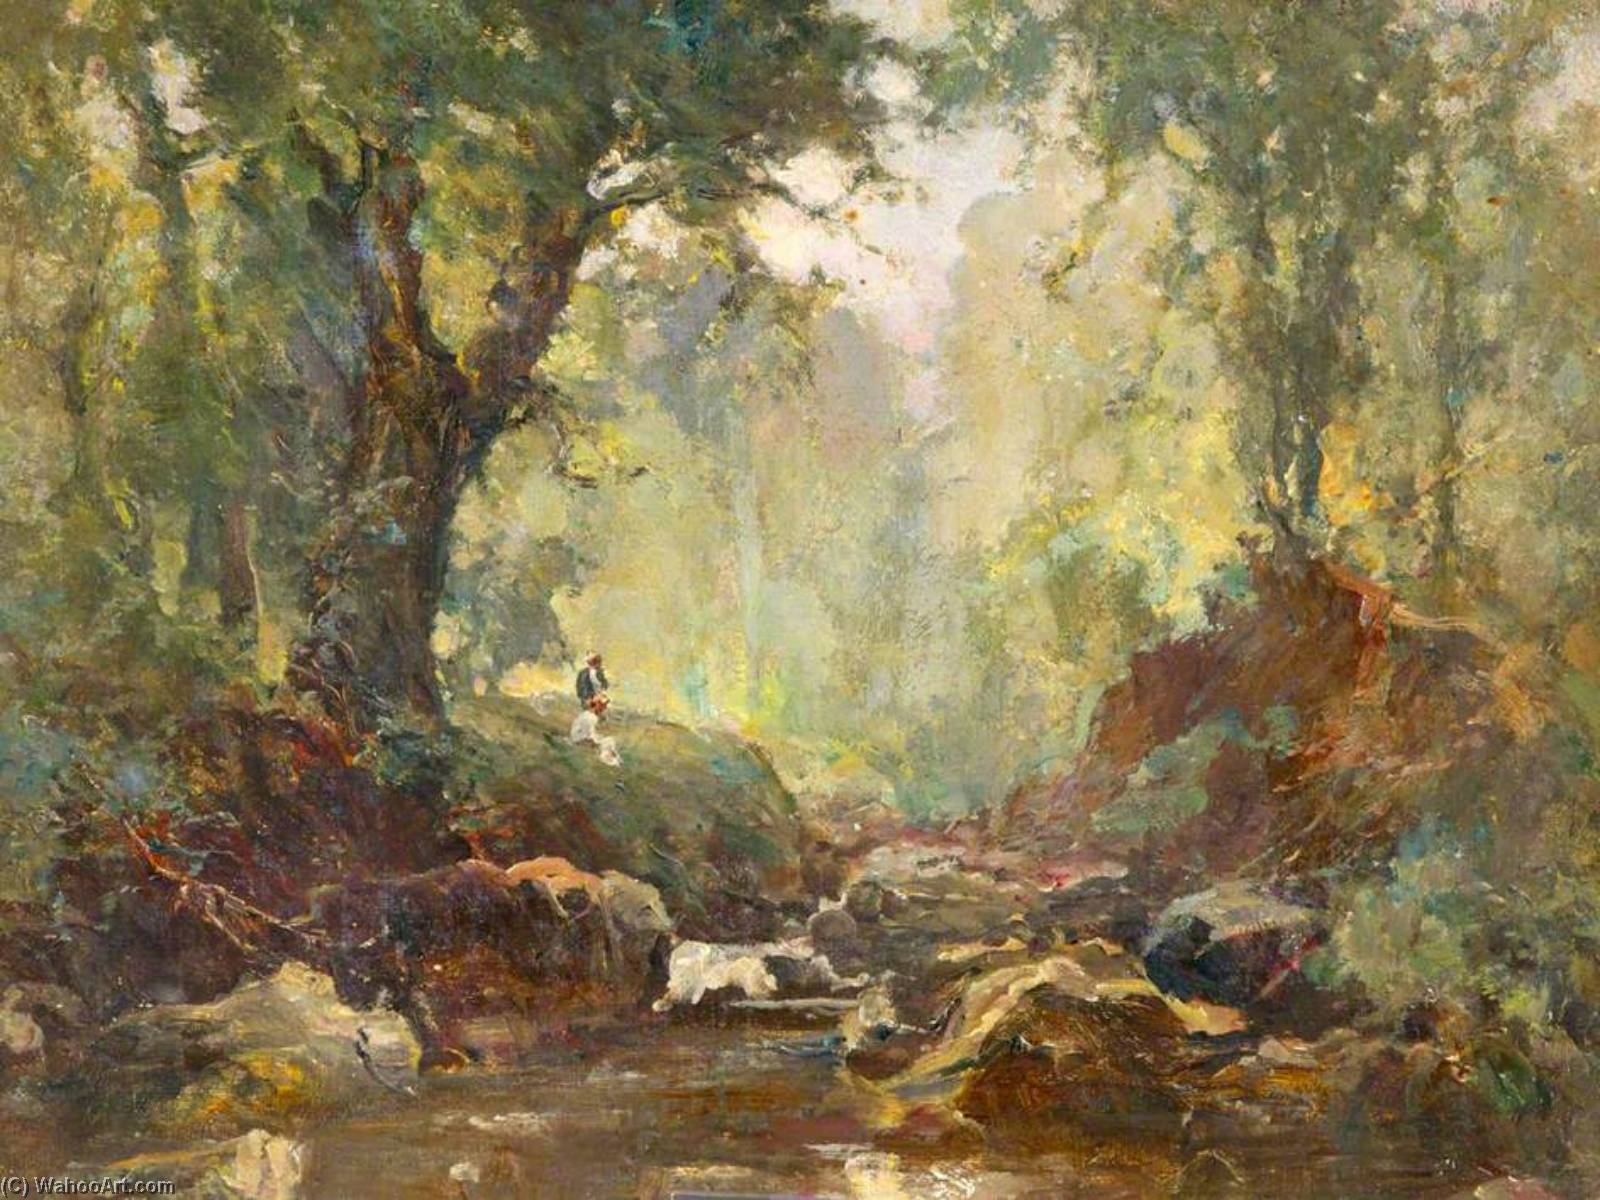 paysage rivière ( peut-être bryansford ou crawfordsburn ) de William Gibbes Mackenzie | Reproductions D'art De Musée William Gibbes Mackenzie | WahooArt.com